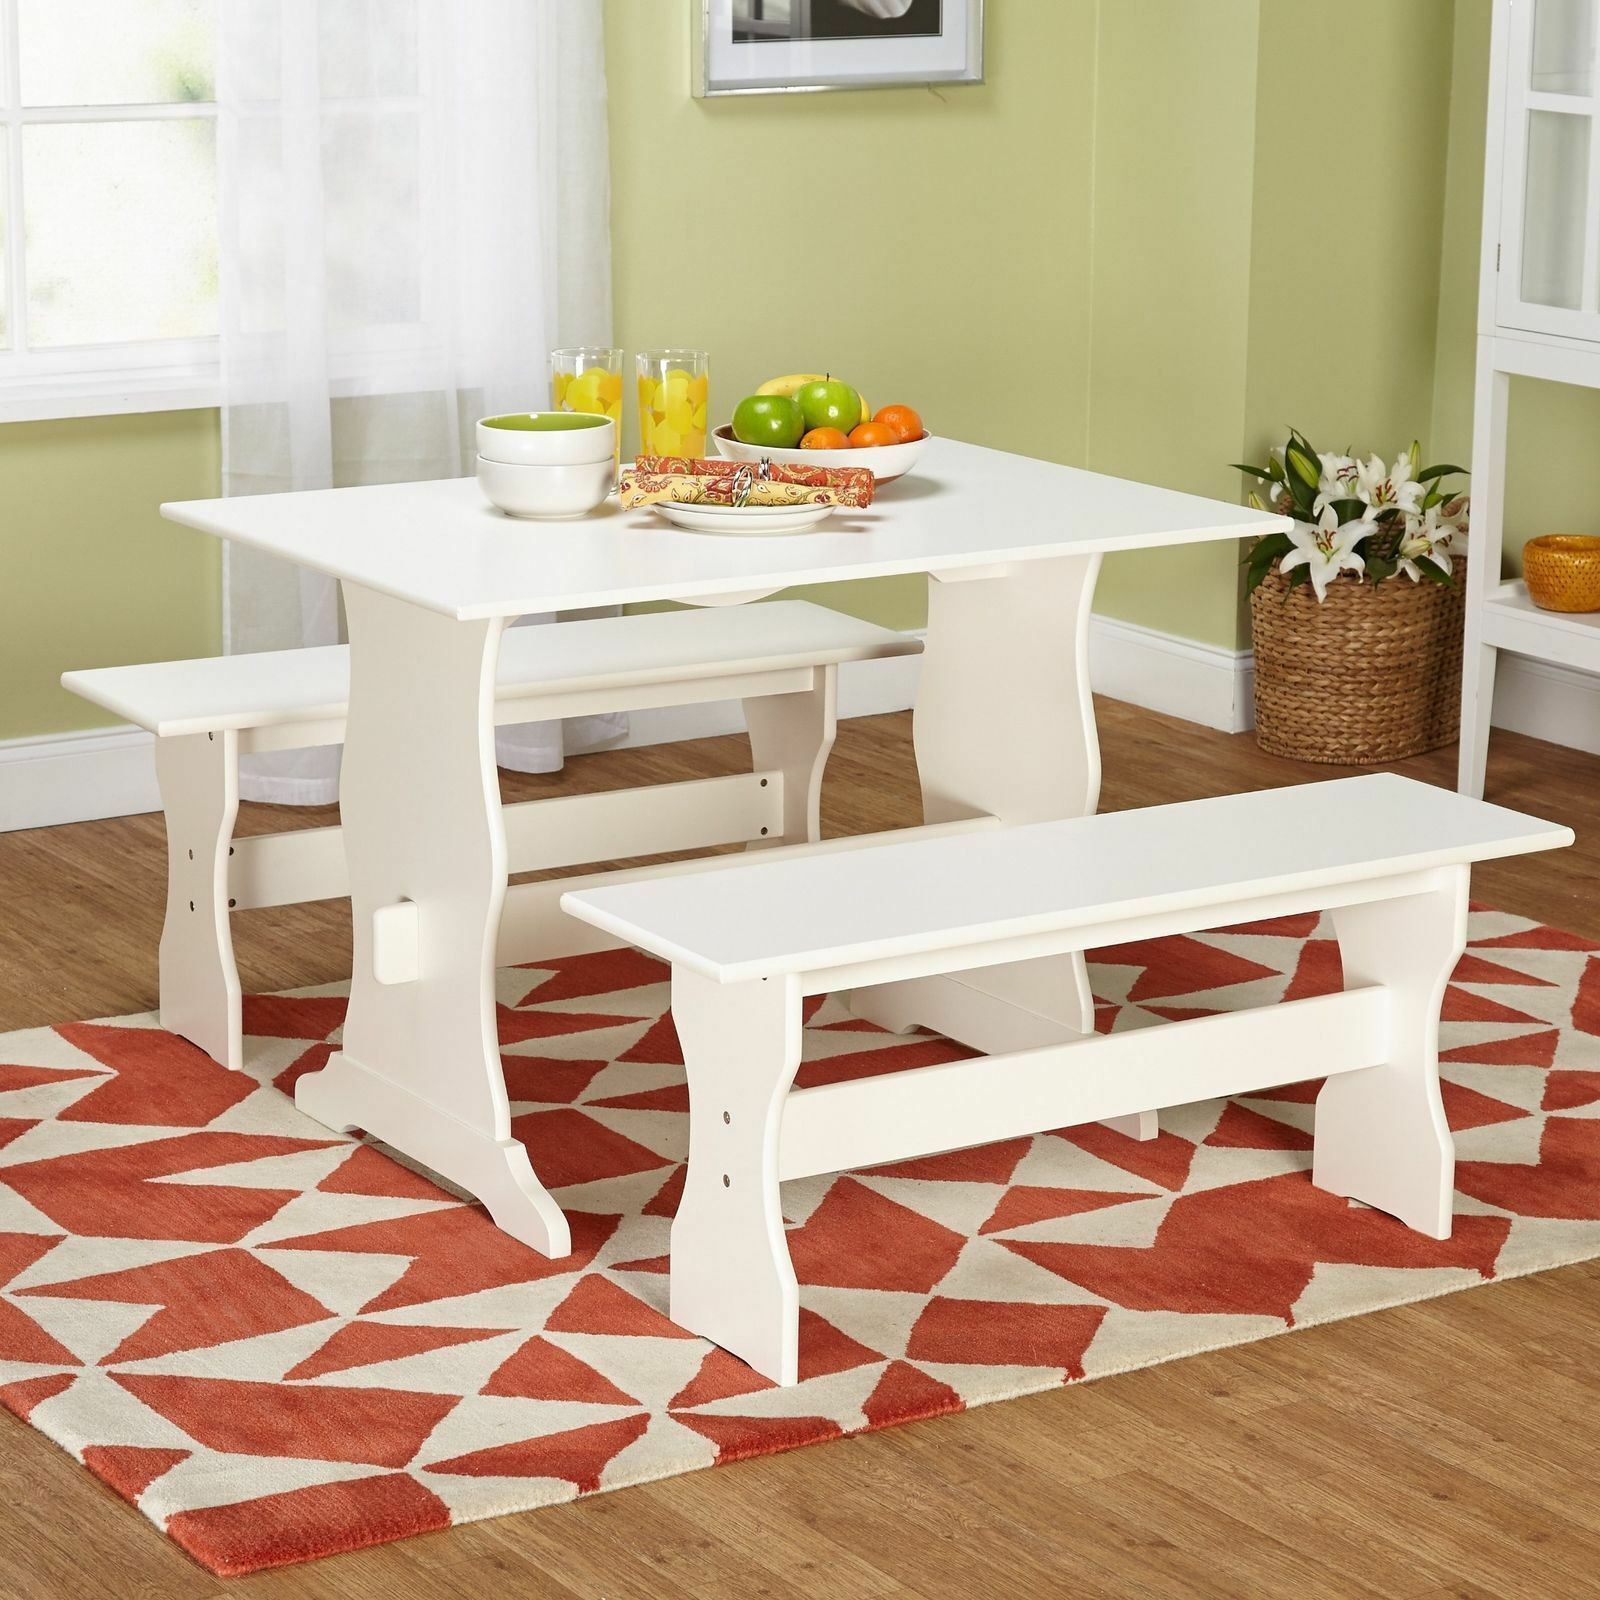 White 3 Pc Dining Set Wooden Kitchen Nook Breakfast Table